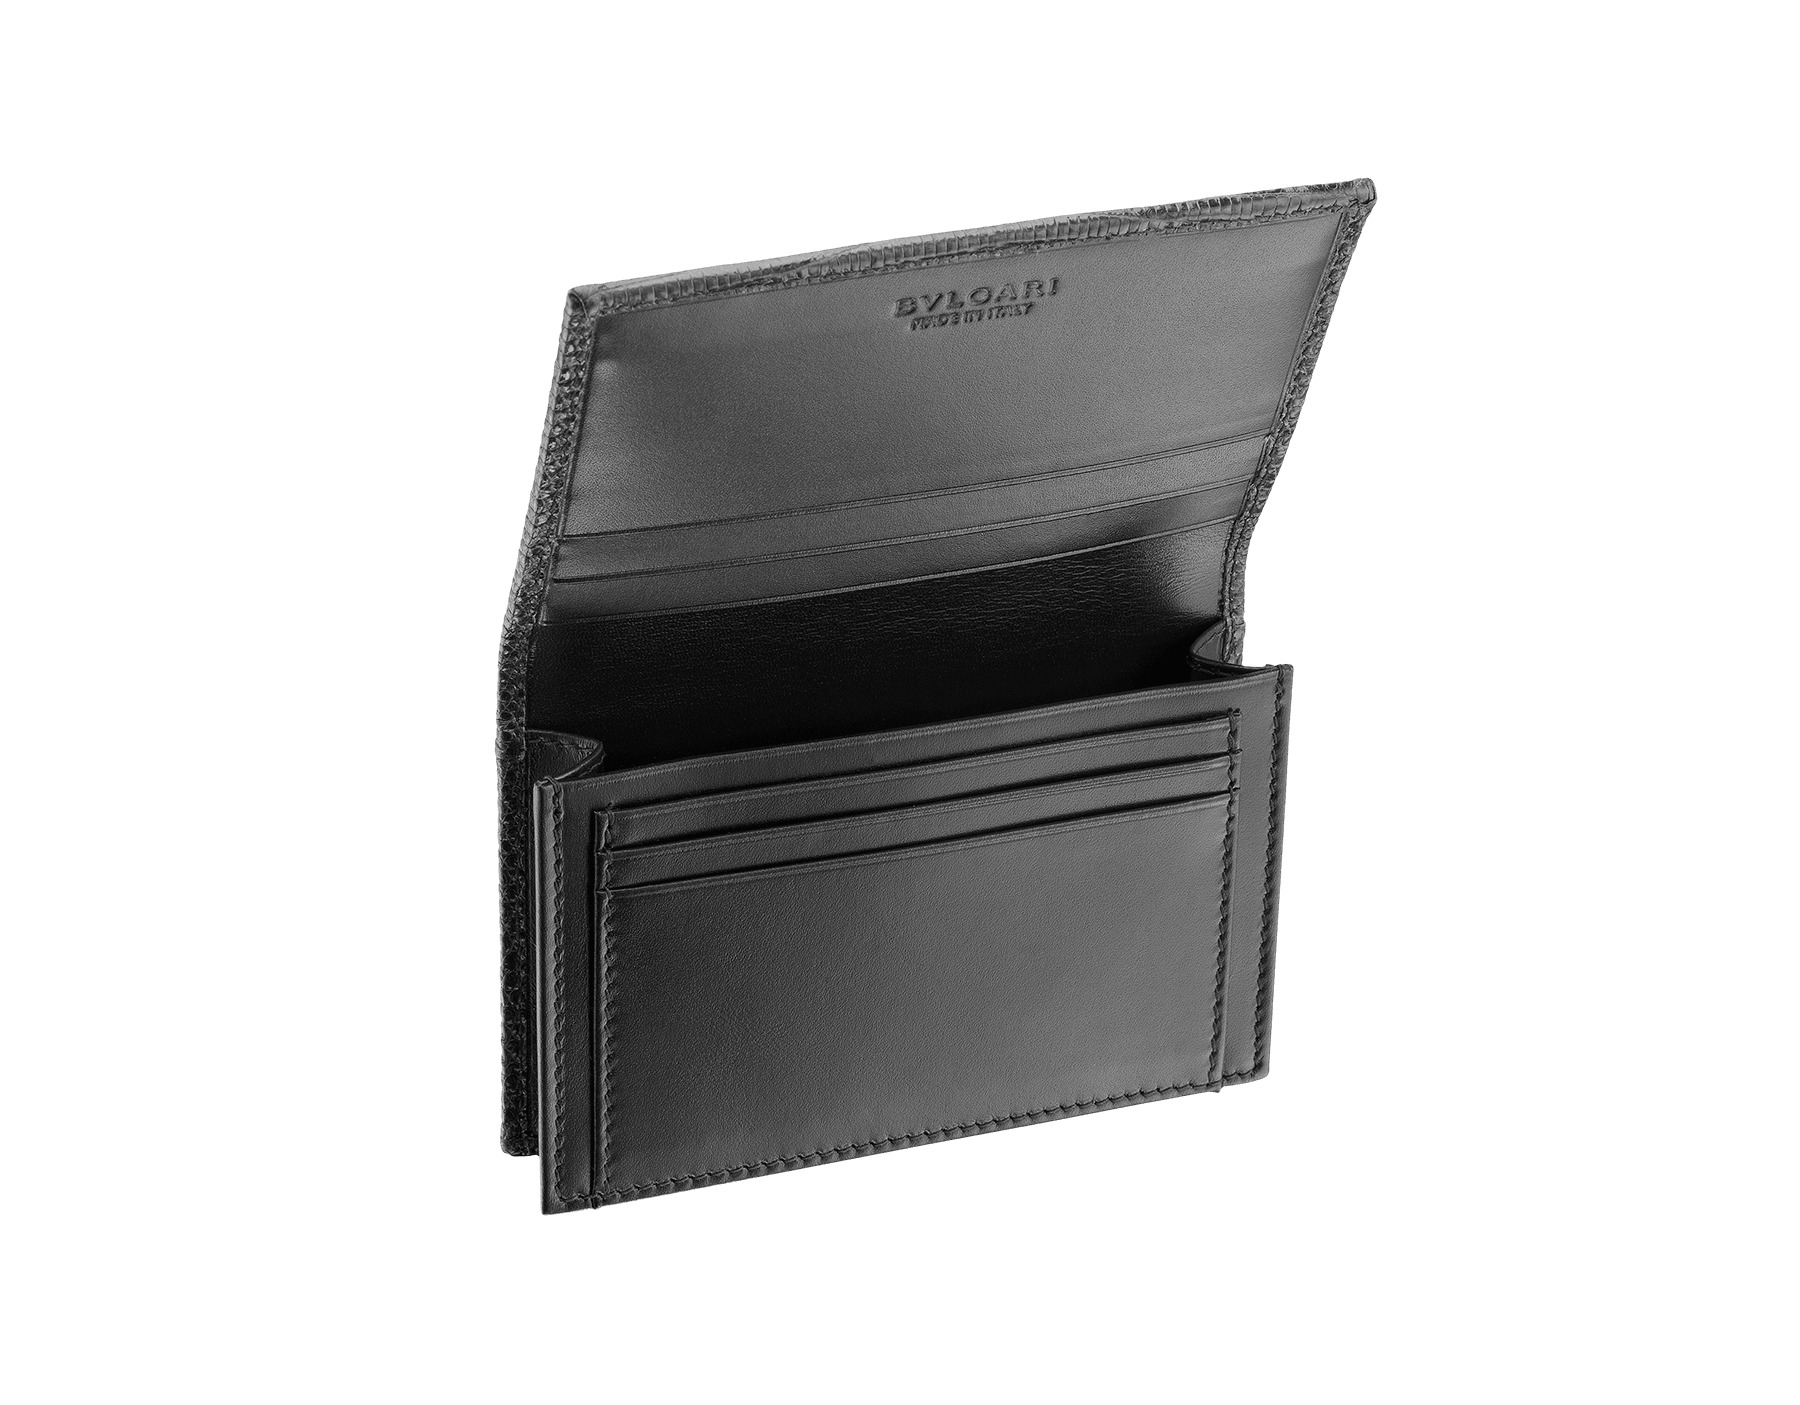 Business card holder in black shiny lizard skin and calf leather with brass palladium plated BVLGARI BVLGARI motif. Three credit card slots, one open pocket and Business cards compartment. 284396 image 2